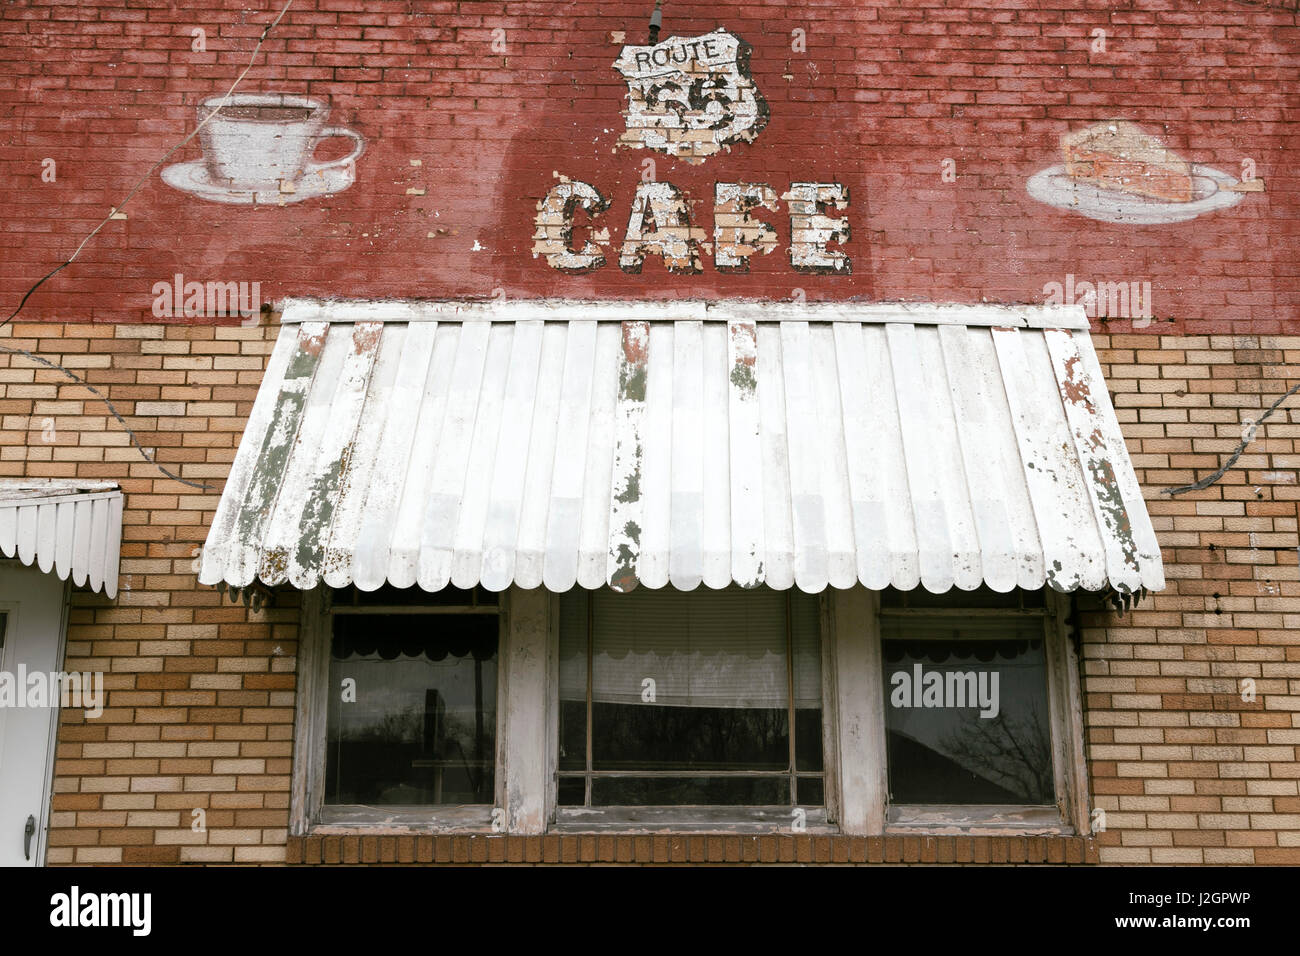 Facade of an abandoned Cafe, Litchfield, Illinois, USA. Route 66 - Stock Image